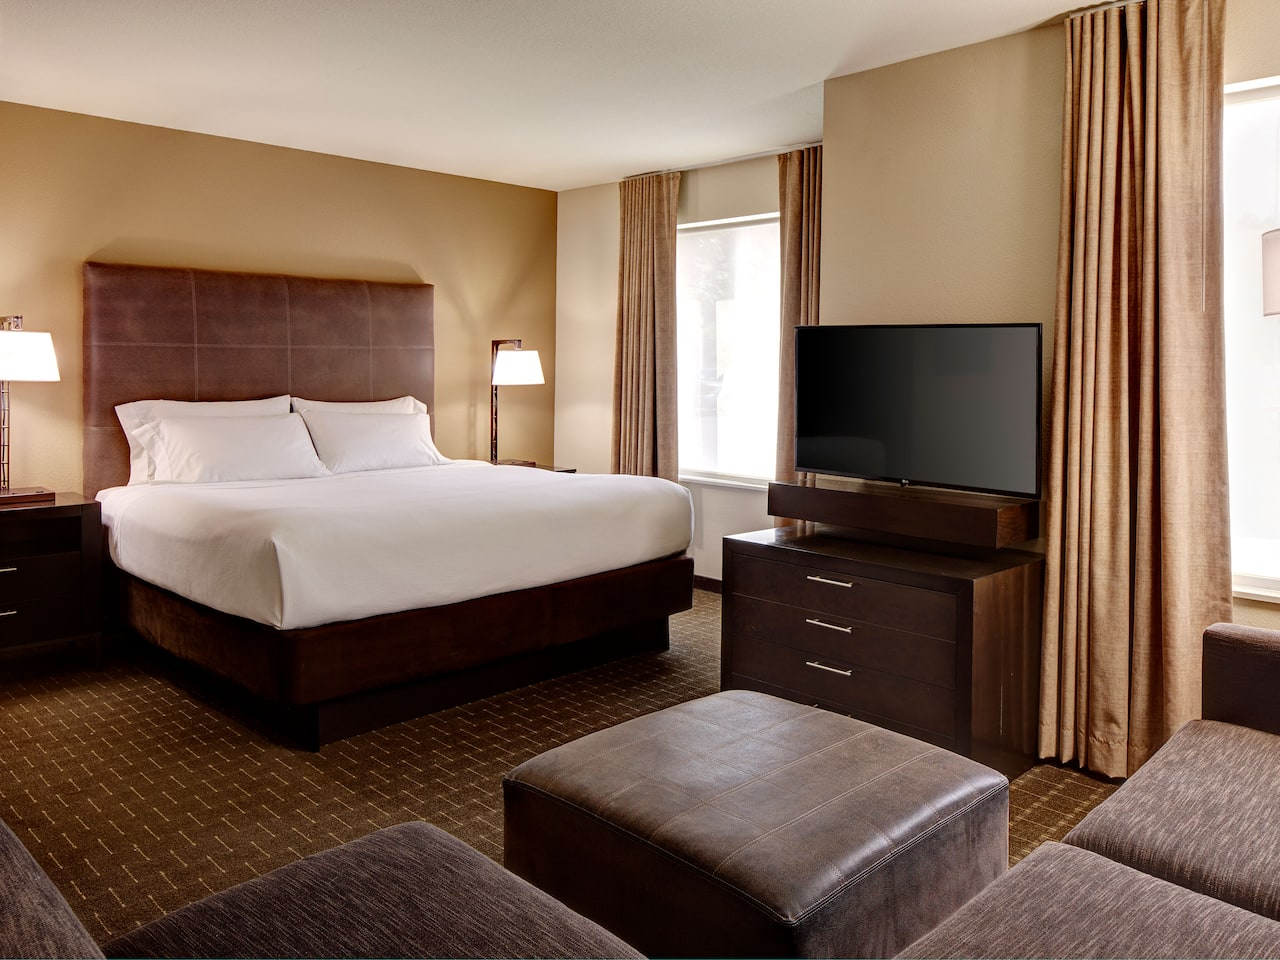 Hyatt House Hotel Seattle/Bellevue Studio Suite Photo